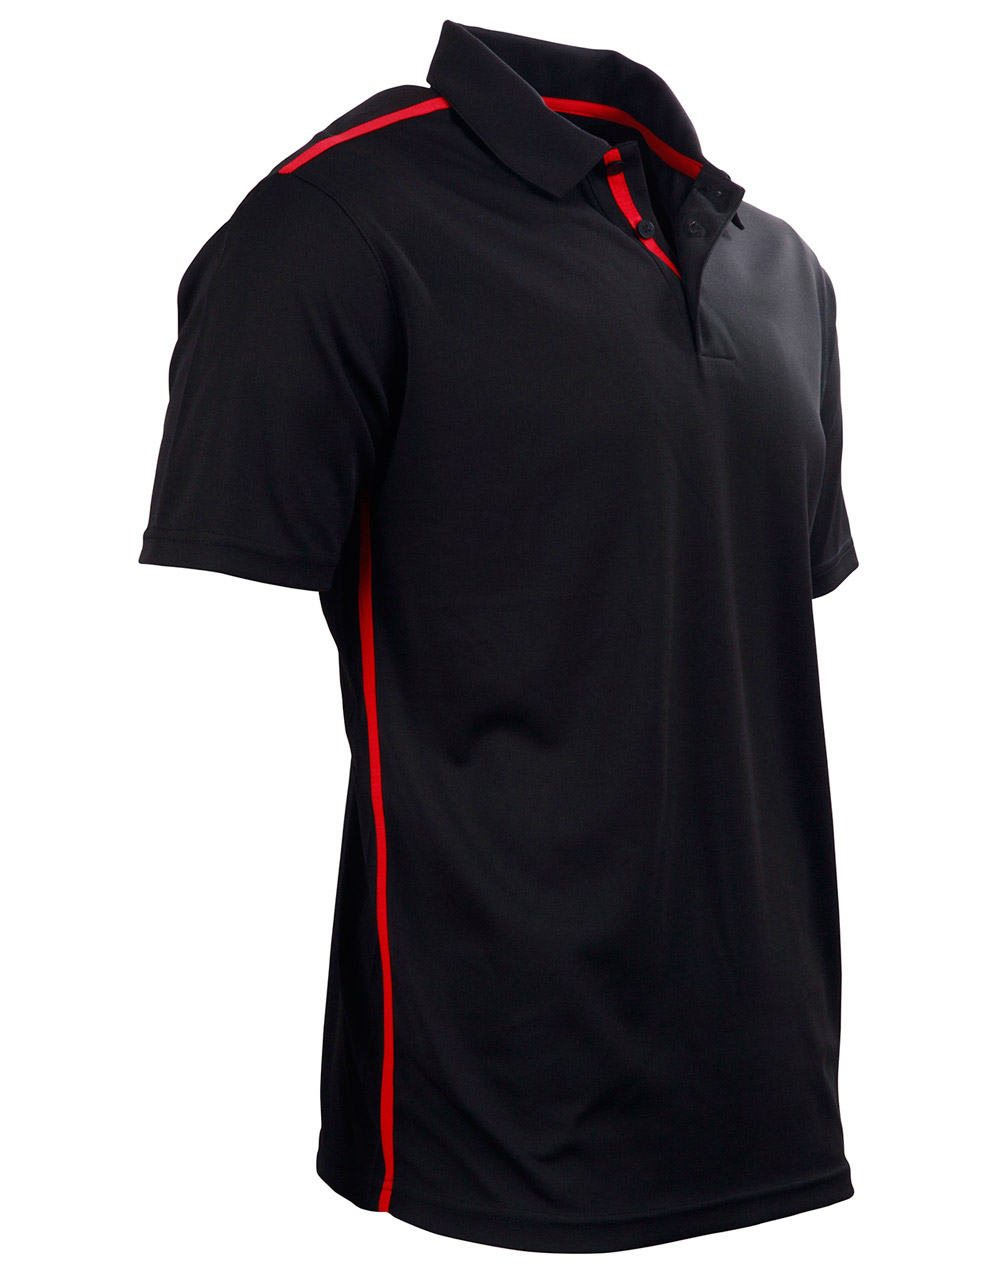 https://s3-ap-southeast-1.amazonaws.com/ws-imgs/POLOSHIRTS/PS83_BlackRed_Side.jpg